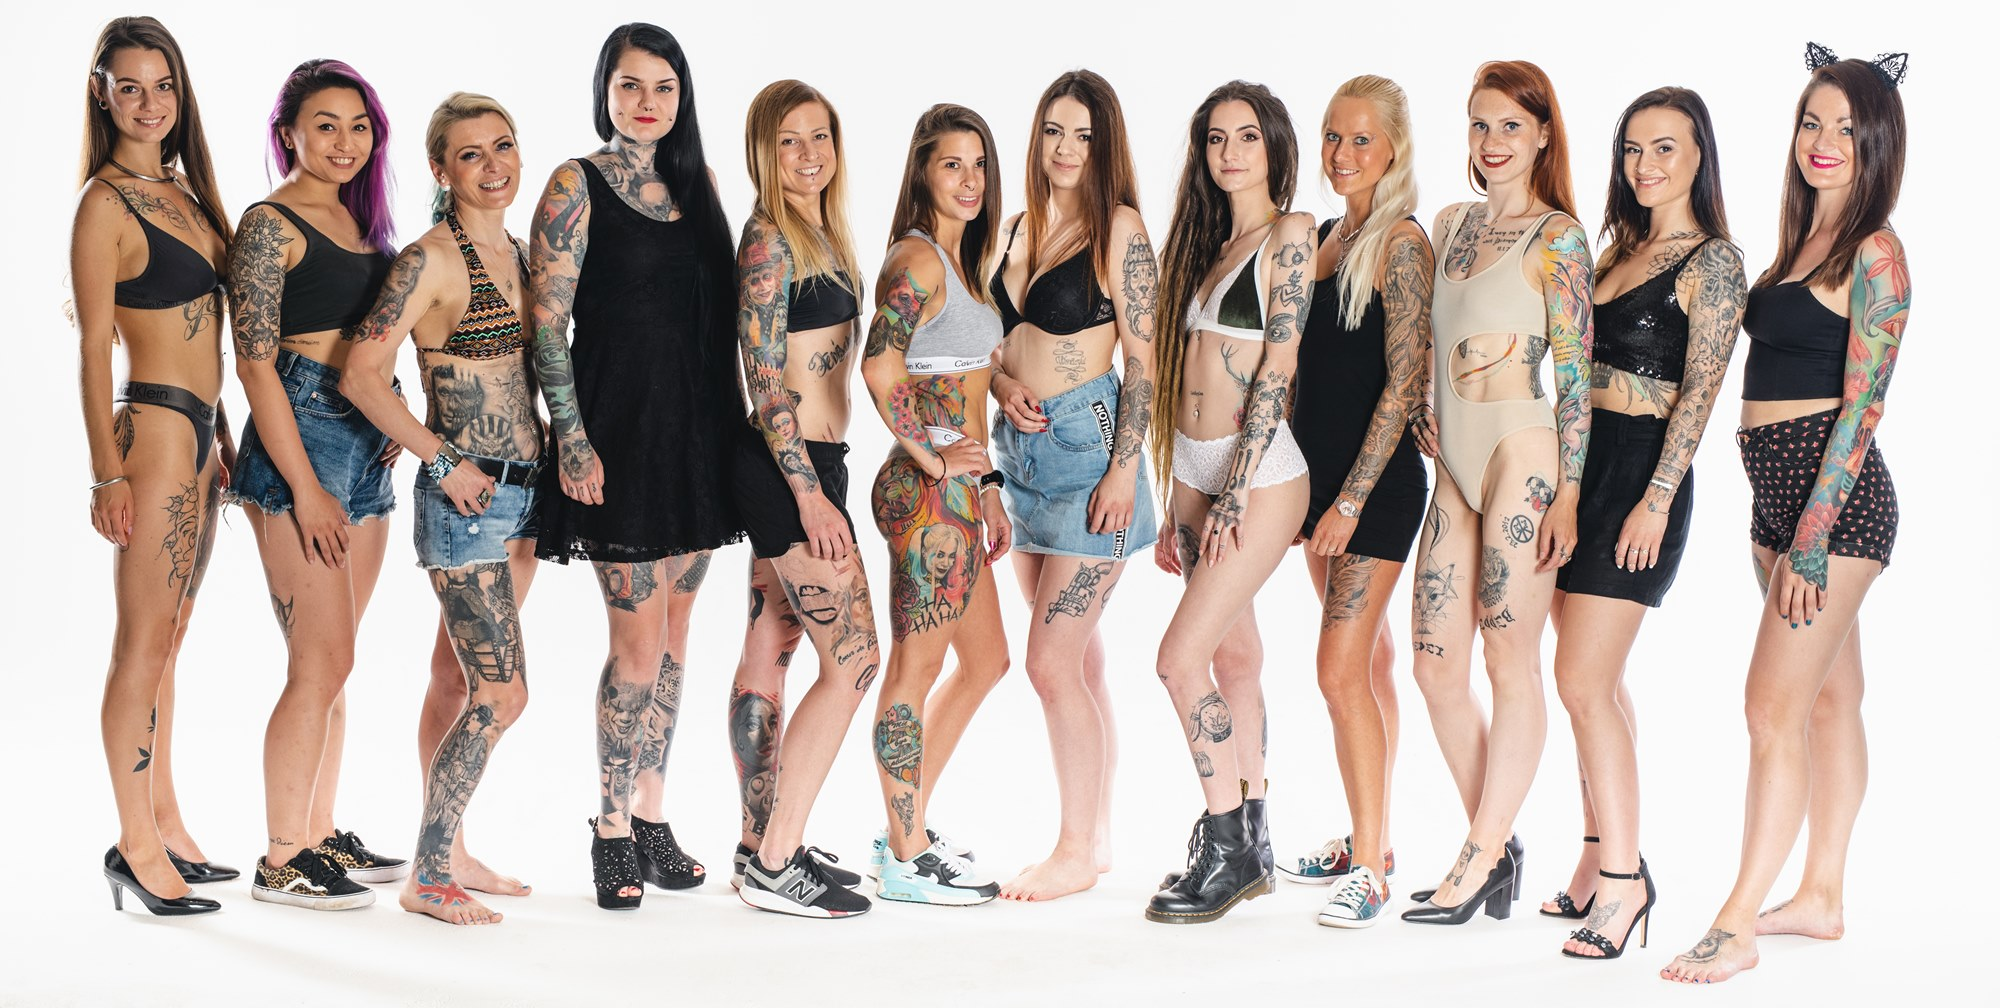 small all miss tattoo 2019 bez log